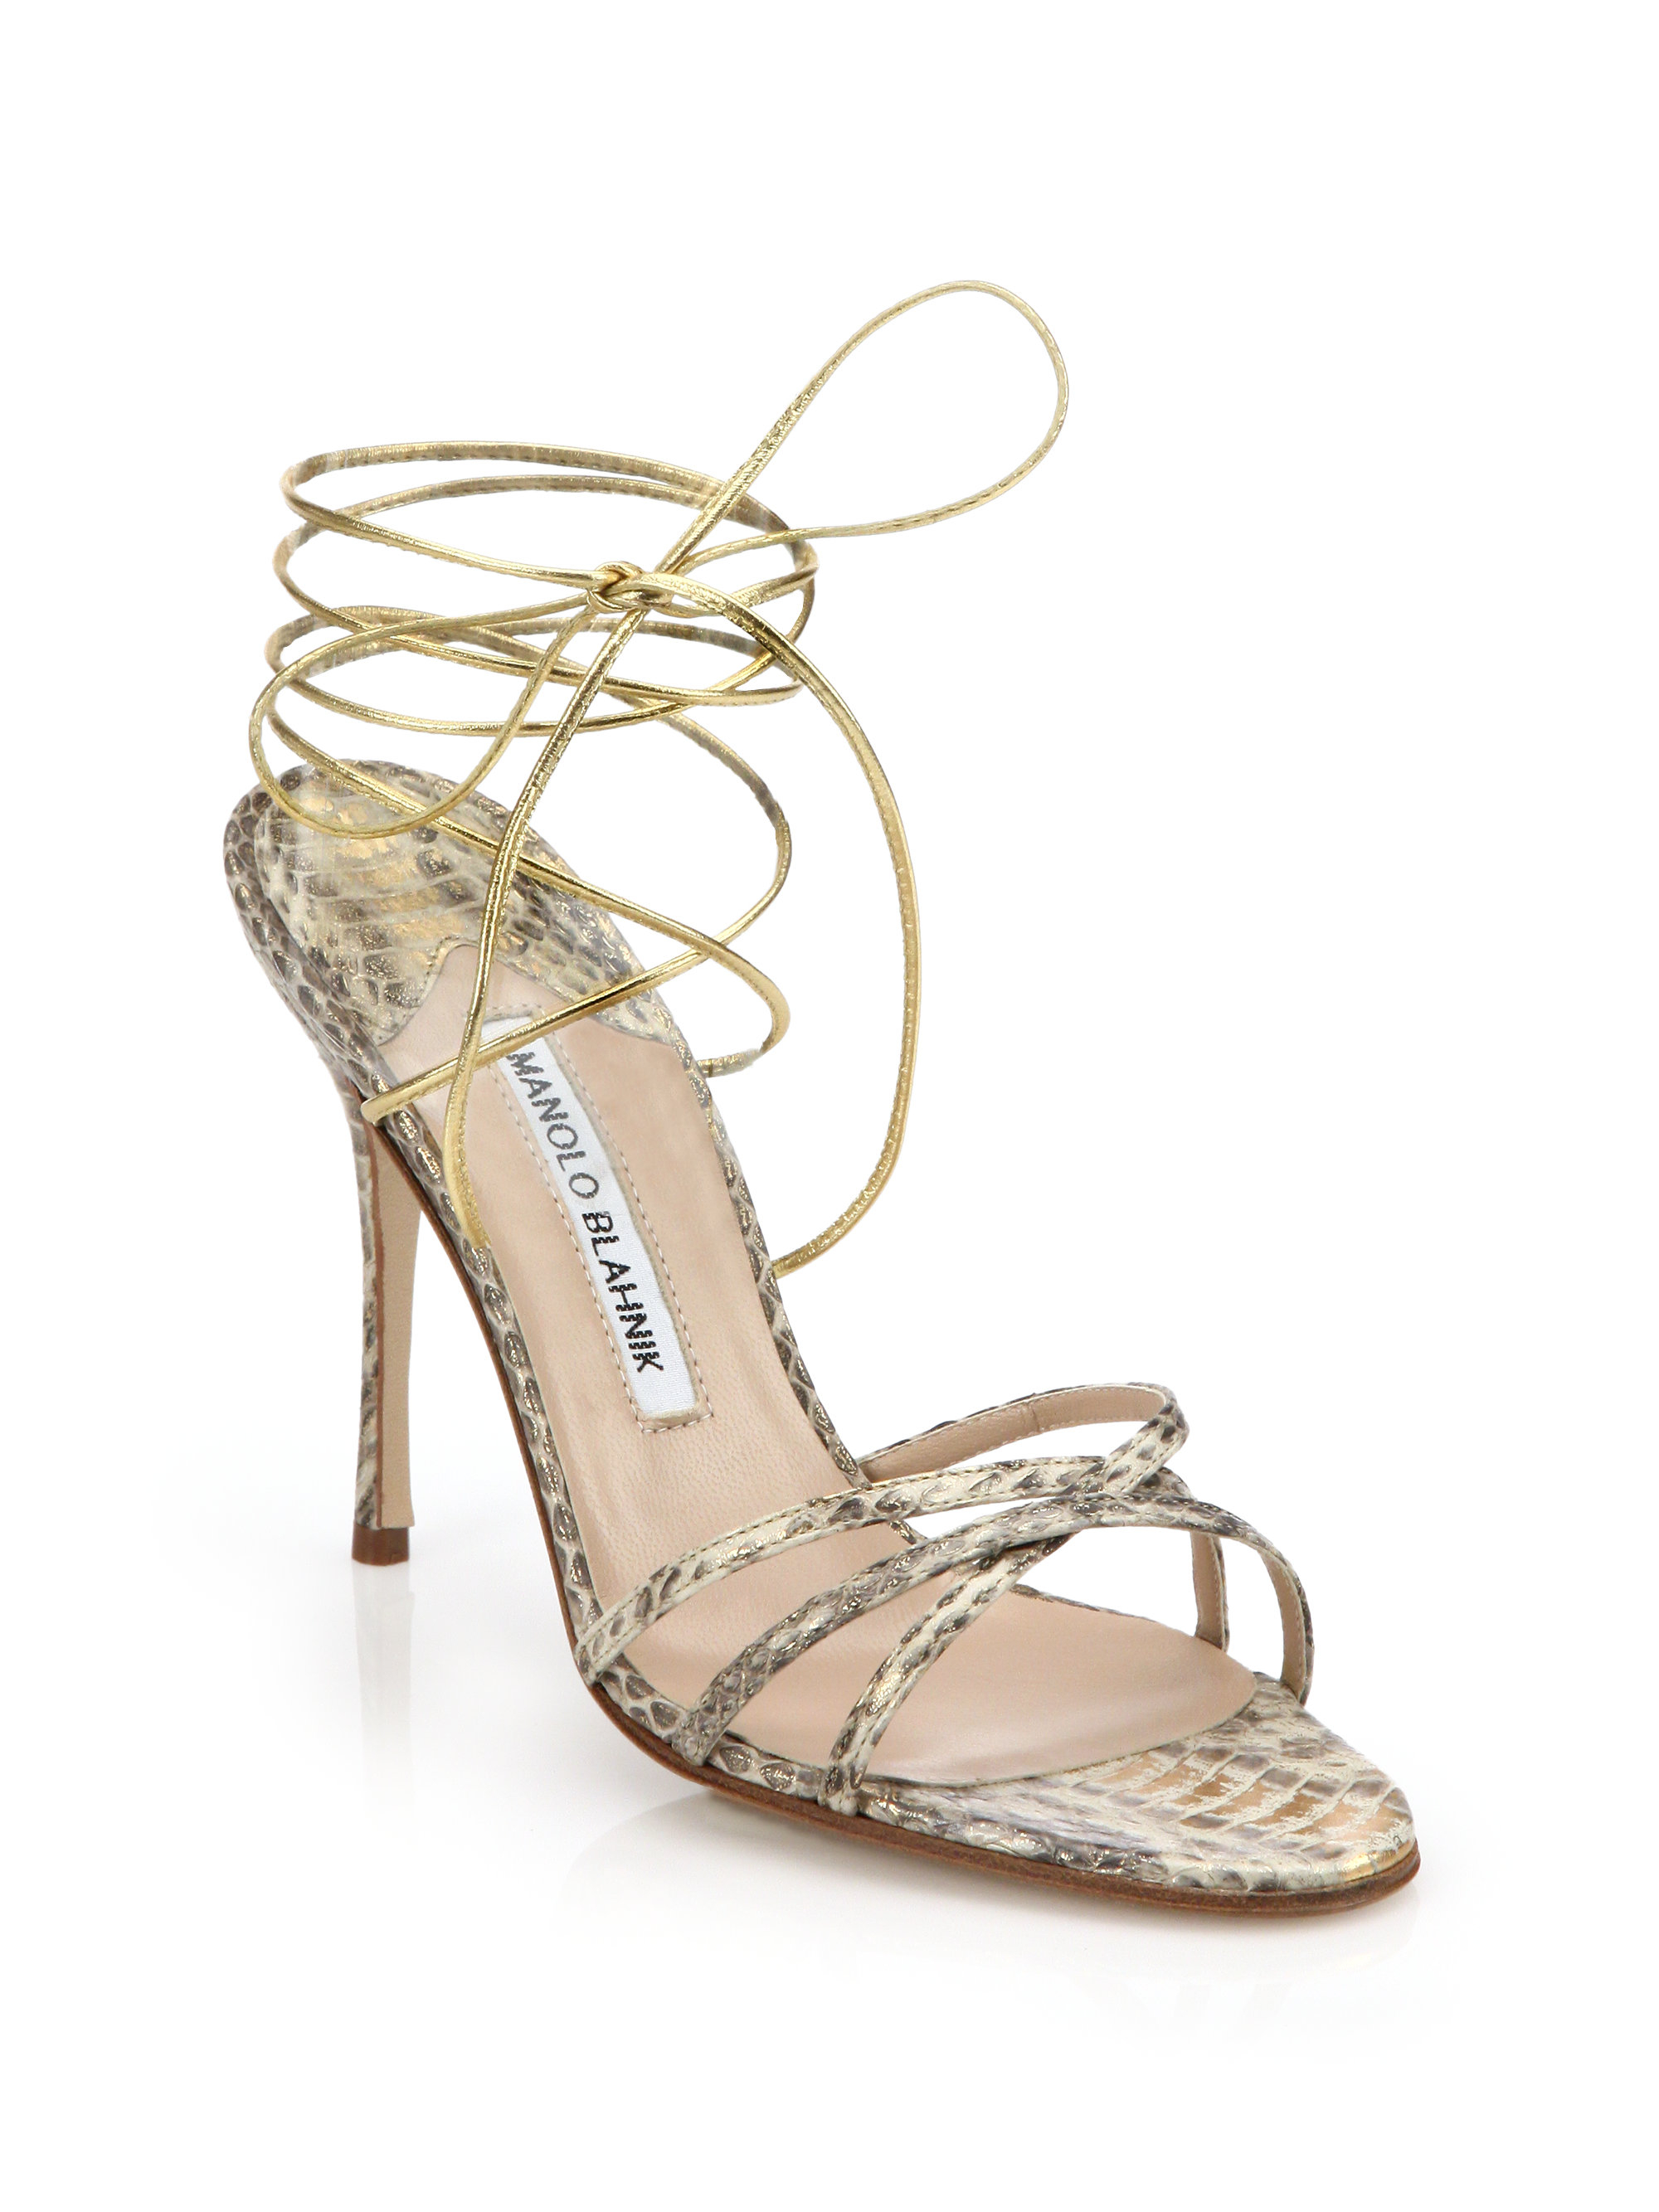 e4e3c14a8e87 ... coupon code lyst manolo blahnik leva snakeskin sandals in natural 66552  caaee